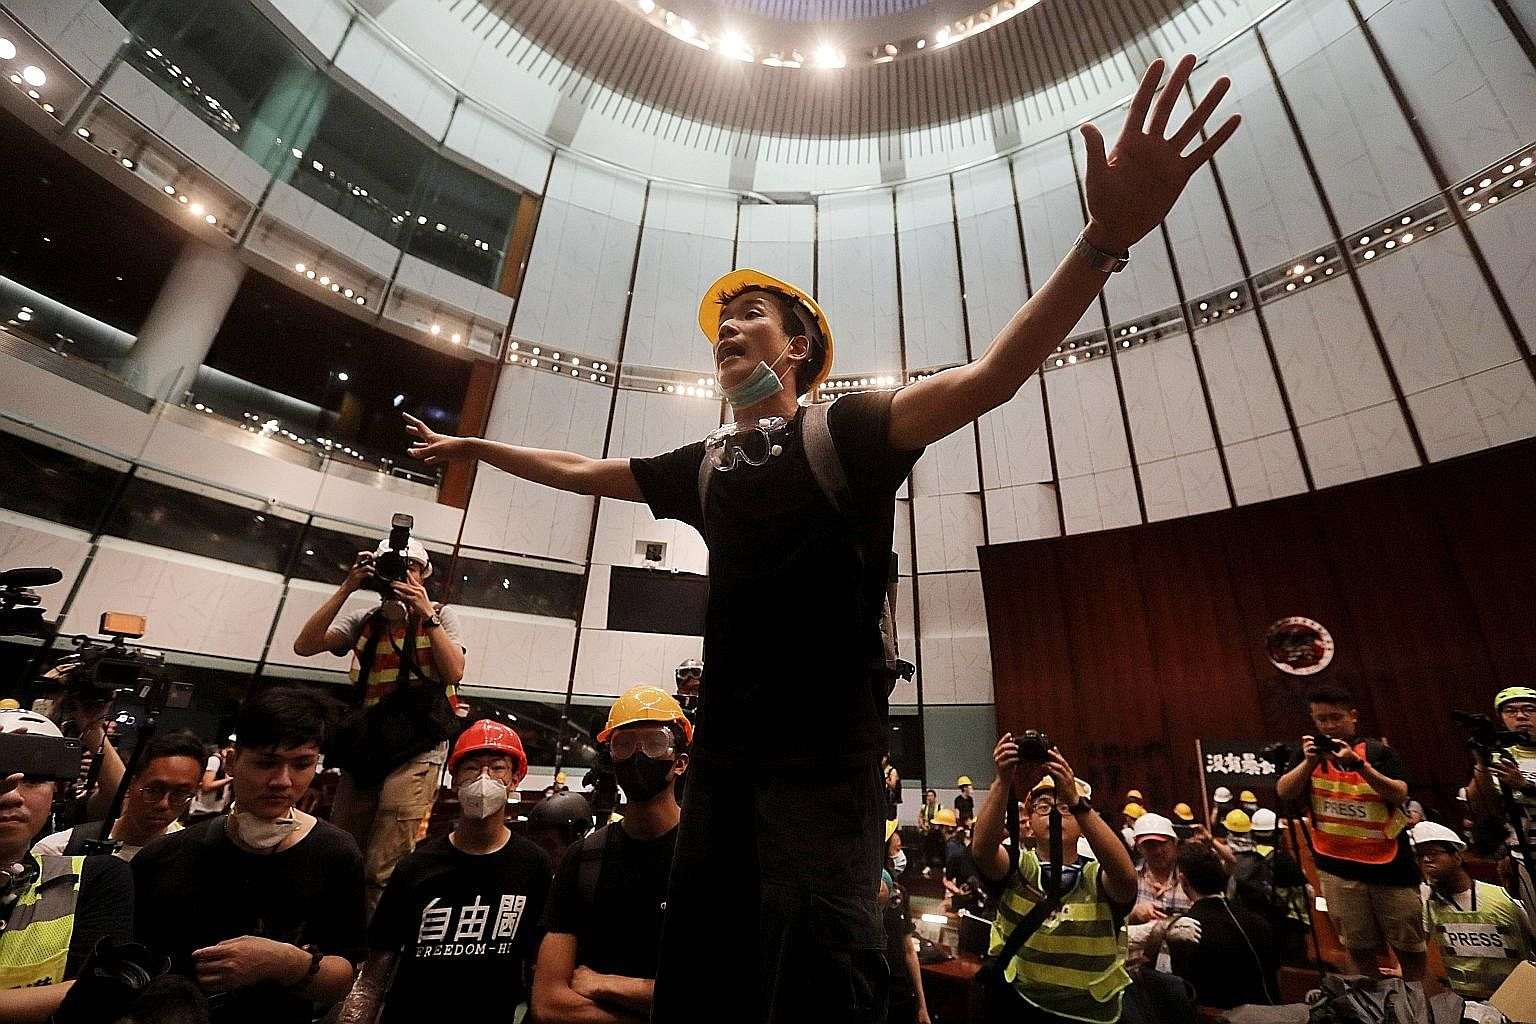 Protesters holding placards and strips of cloth with protest messages at last Friday's rally. But discontent had already reared its head during the Occupy Movement in 2014. The protesters broke into the Parliament chambers of the Legislative Council